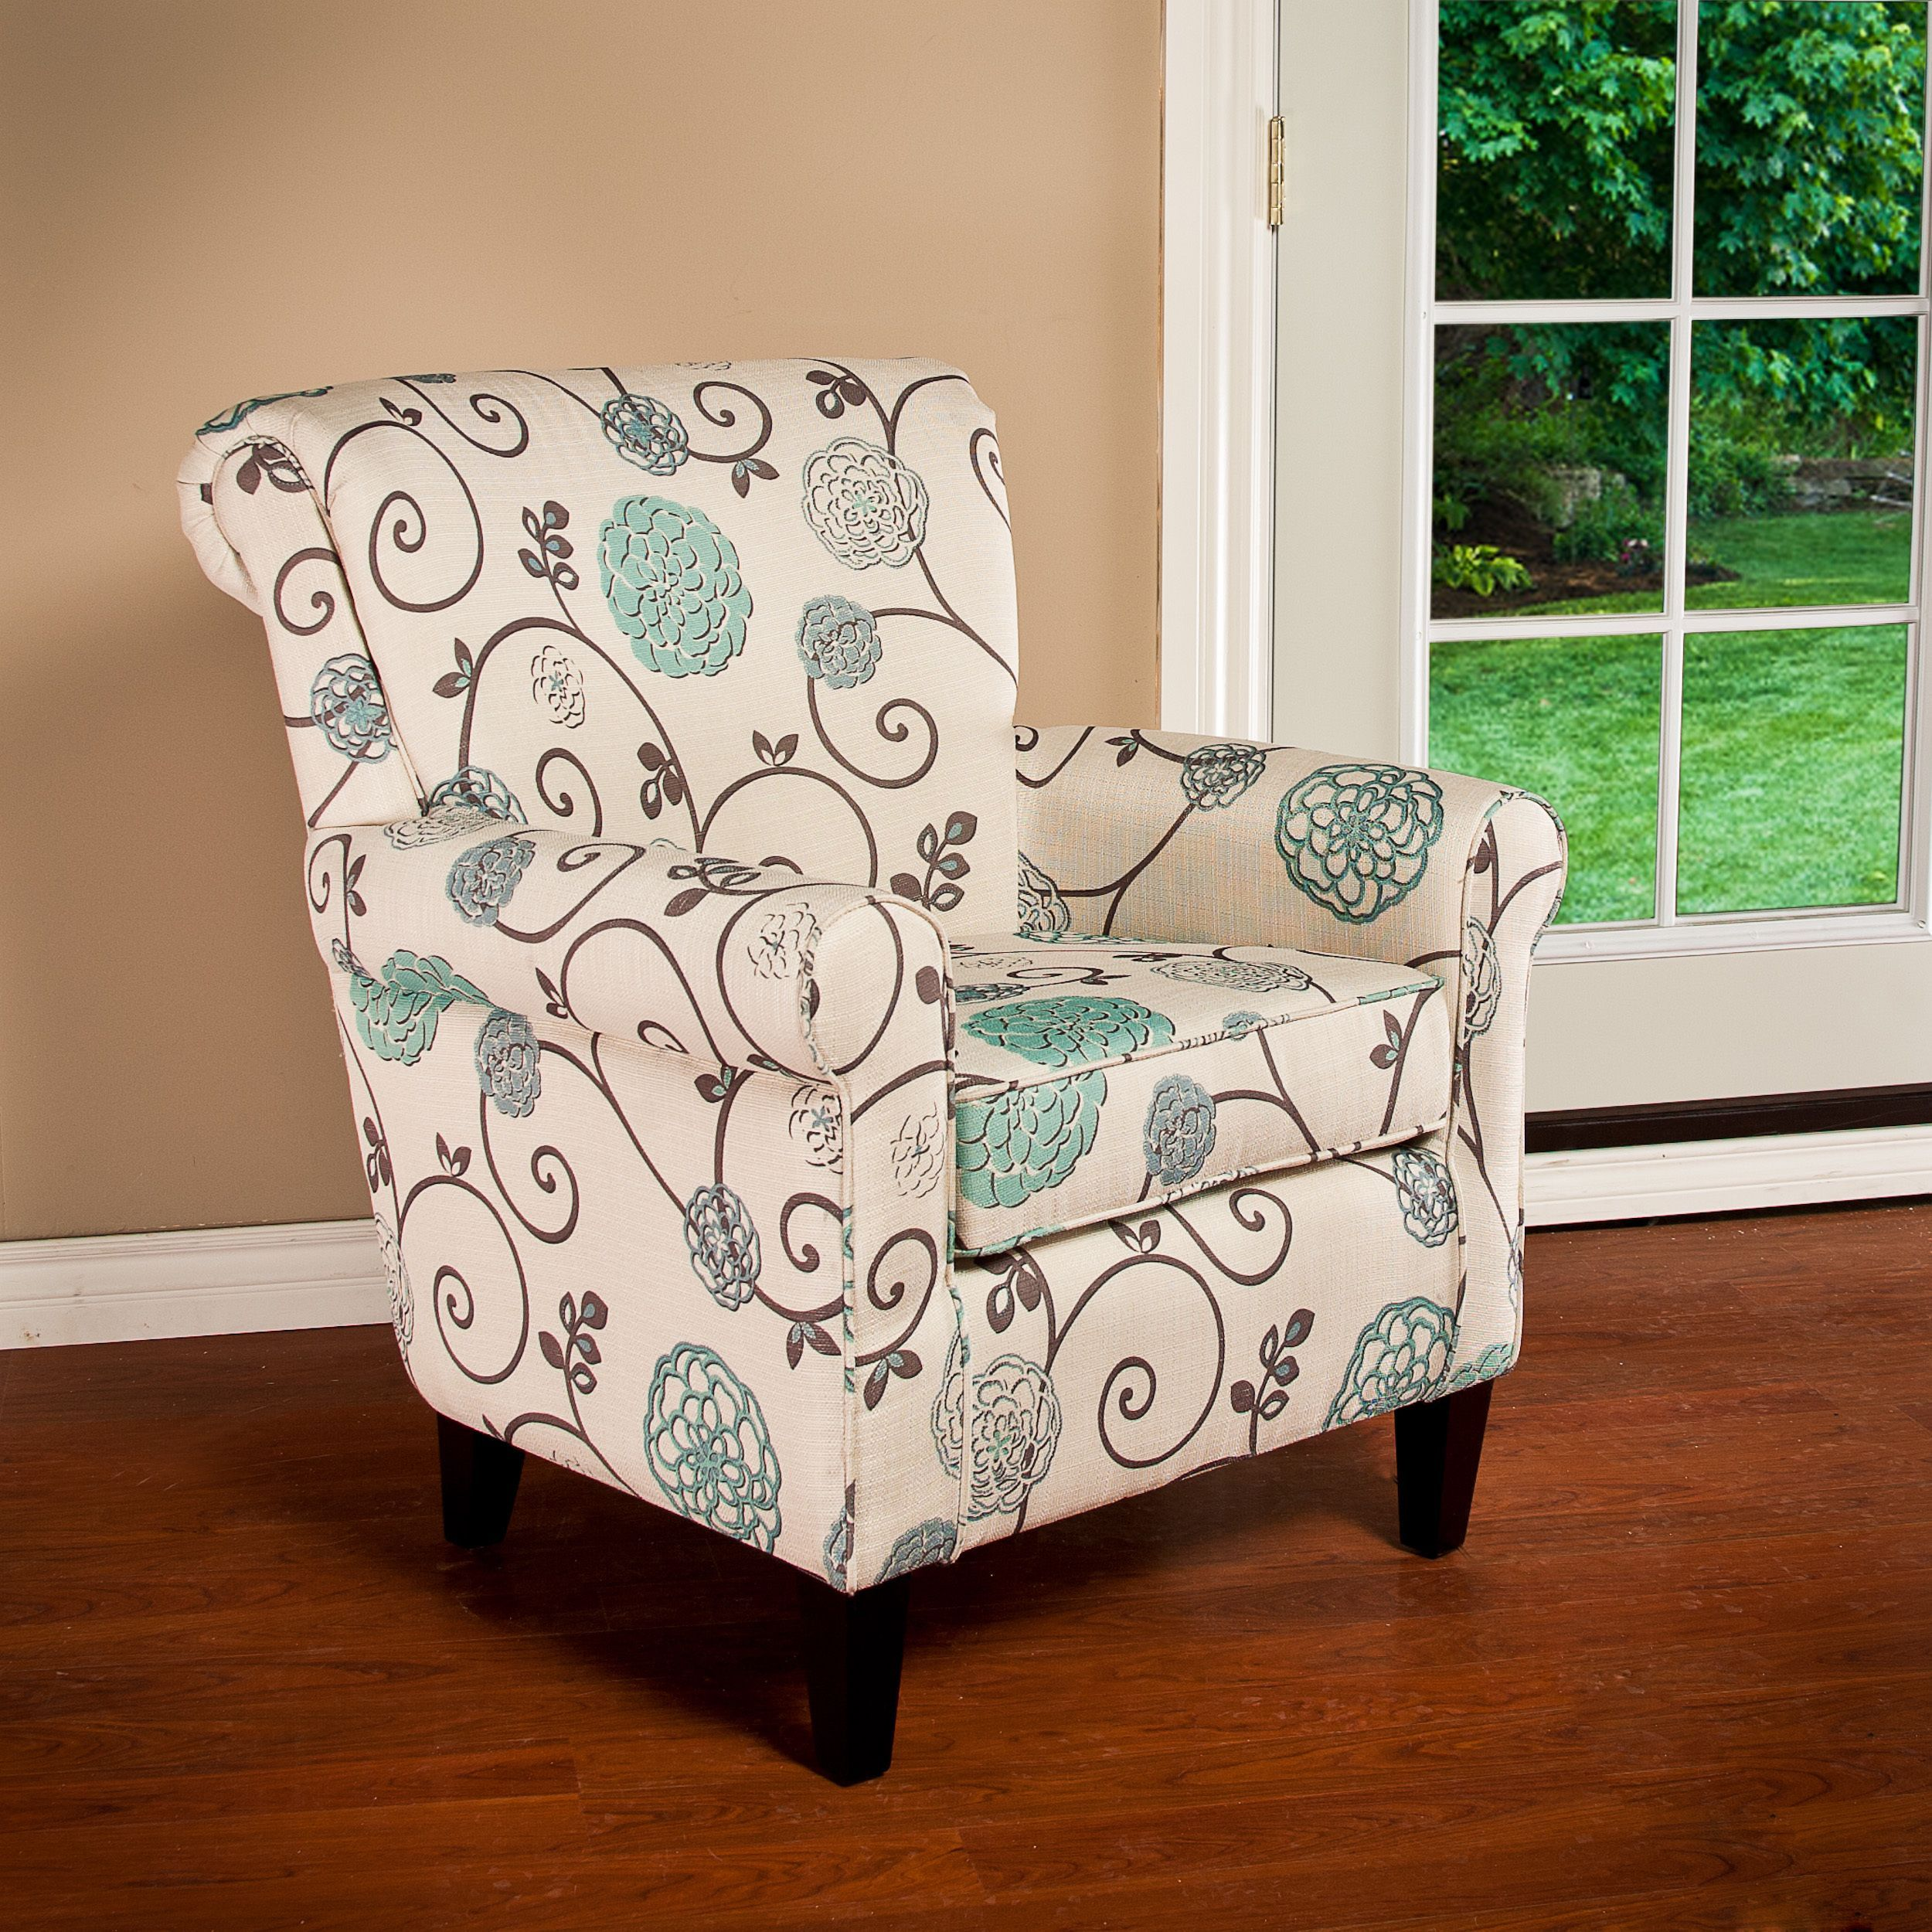 ... Club Chair   Embrace Modern Yet Classic Style With This Roseville  Chair. Its Comfy Design And Materials Will Elevate It Above Your Other  Furniture.